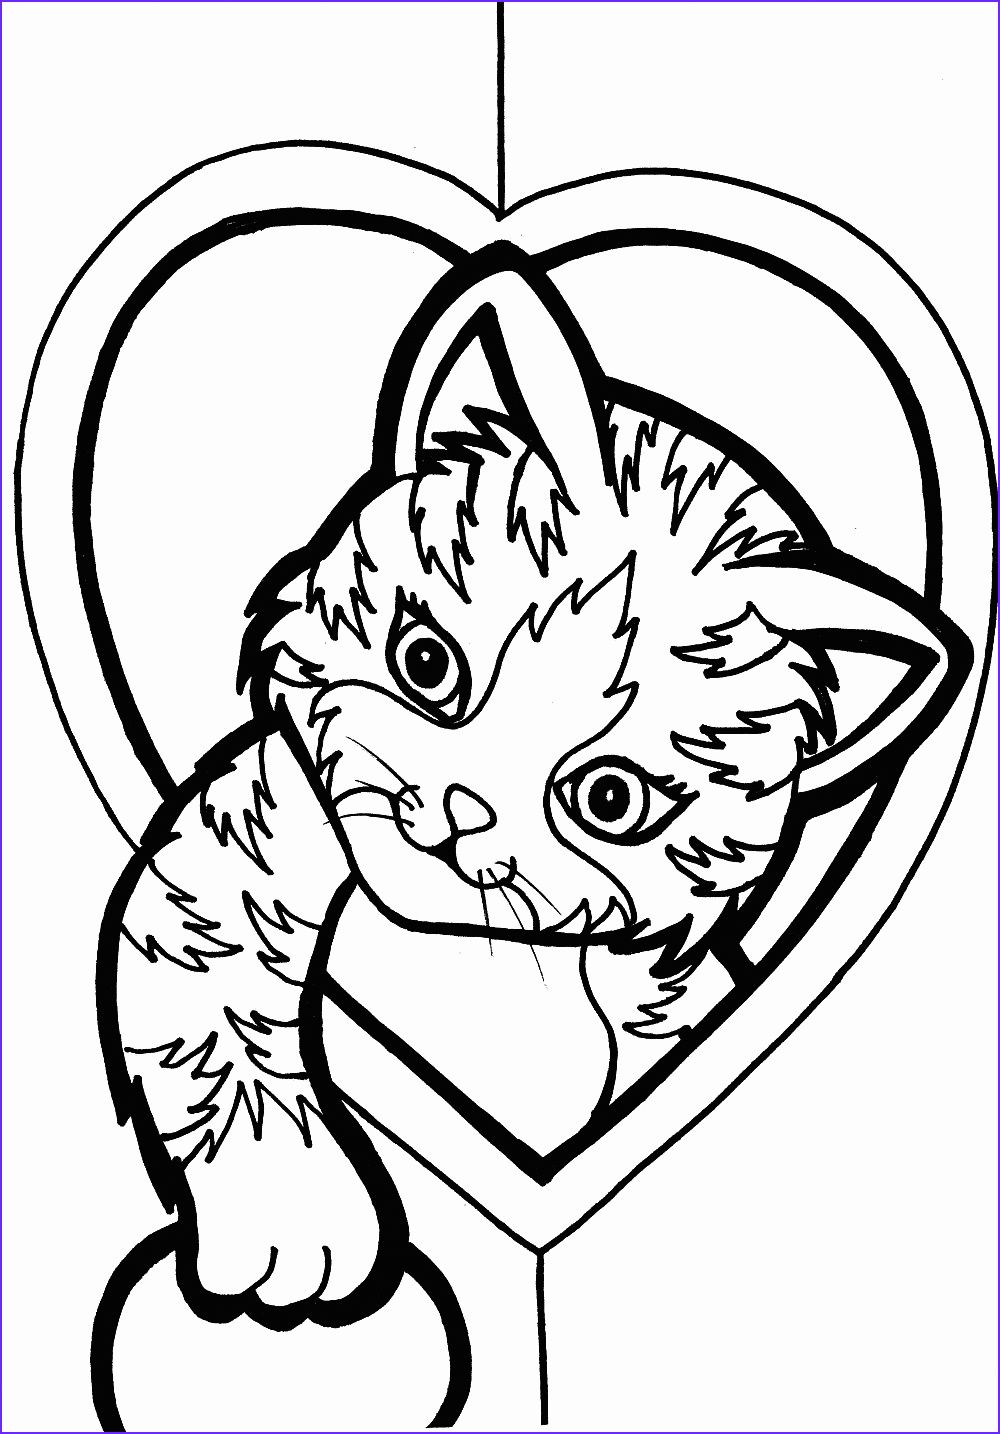 45 Best Of Photos Of Cute Cat Coloring Pages Heart Coloring Pages Cute Coloring Pages Kittens Coloring